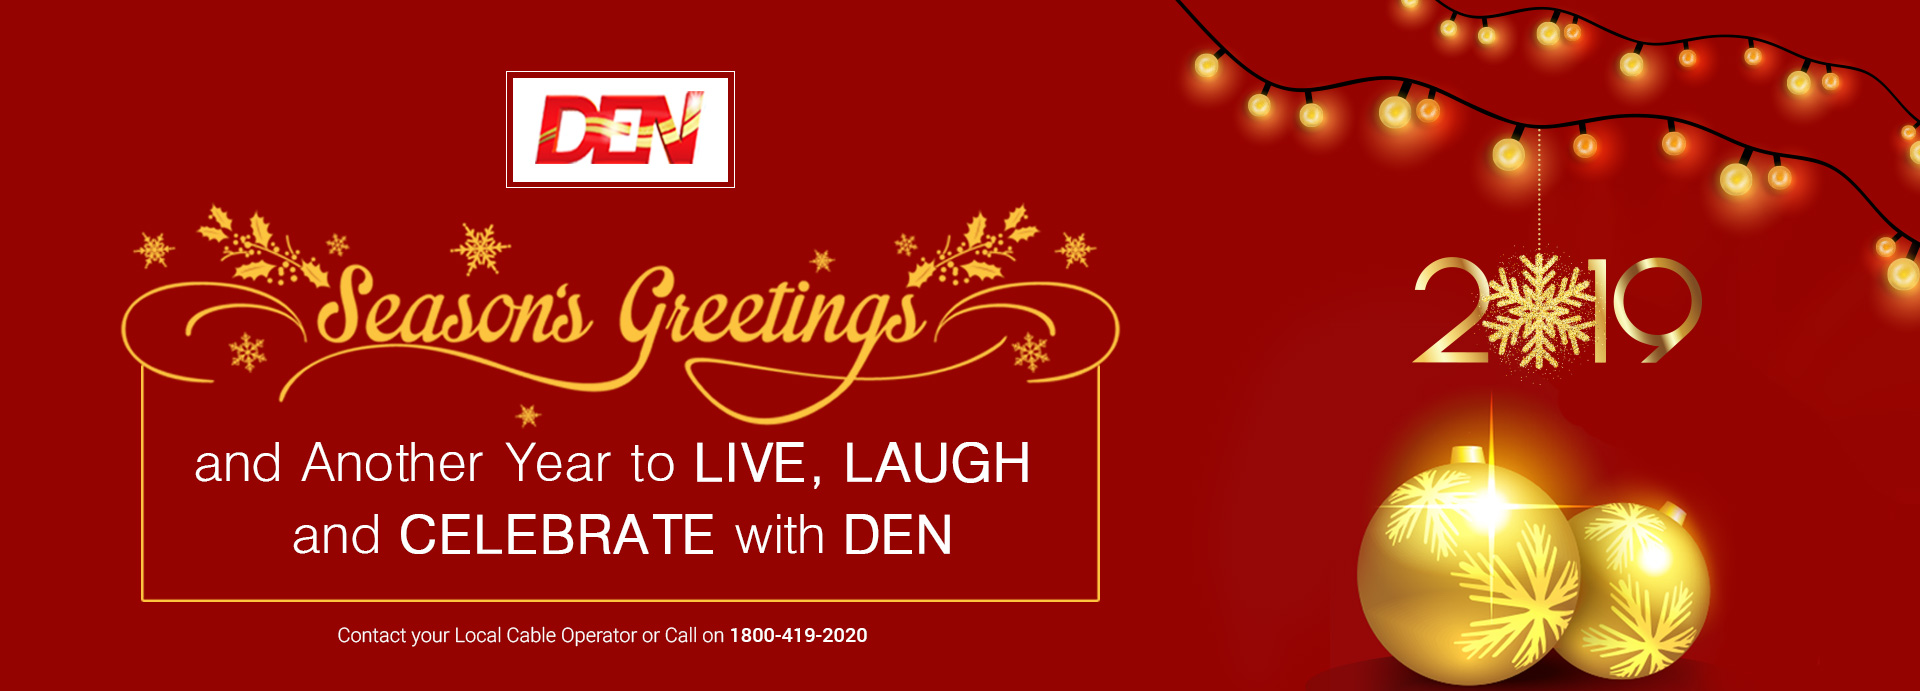 DEN - Cable network in India